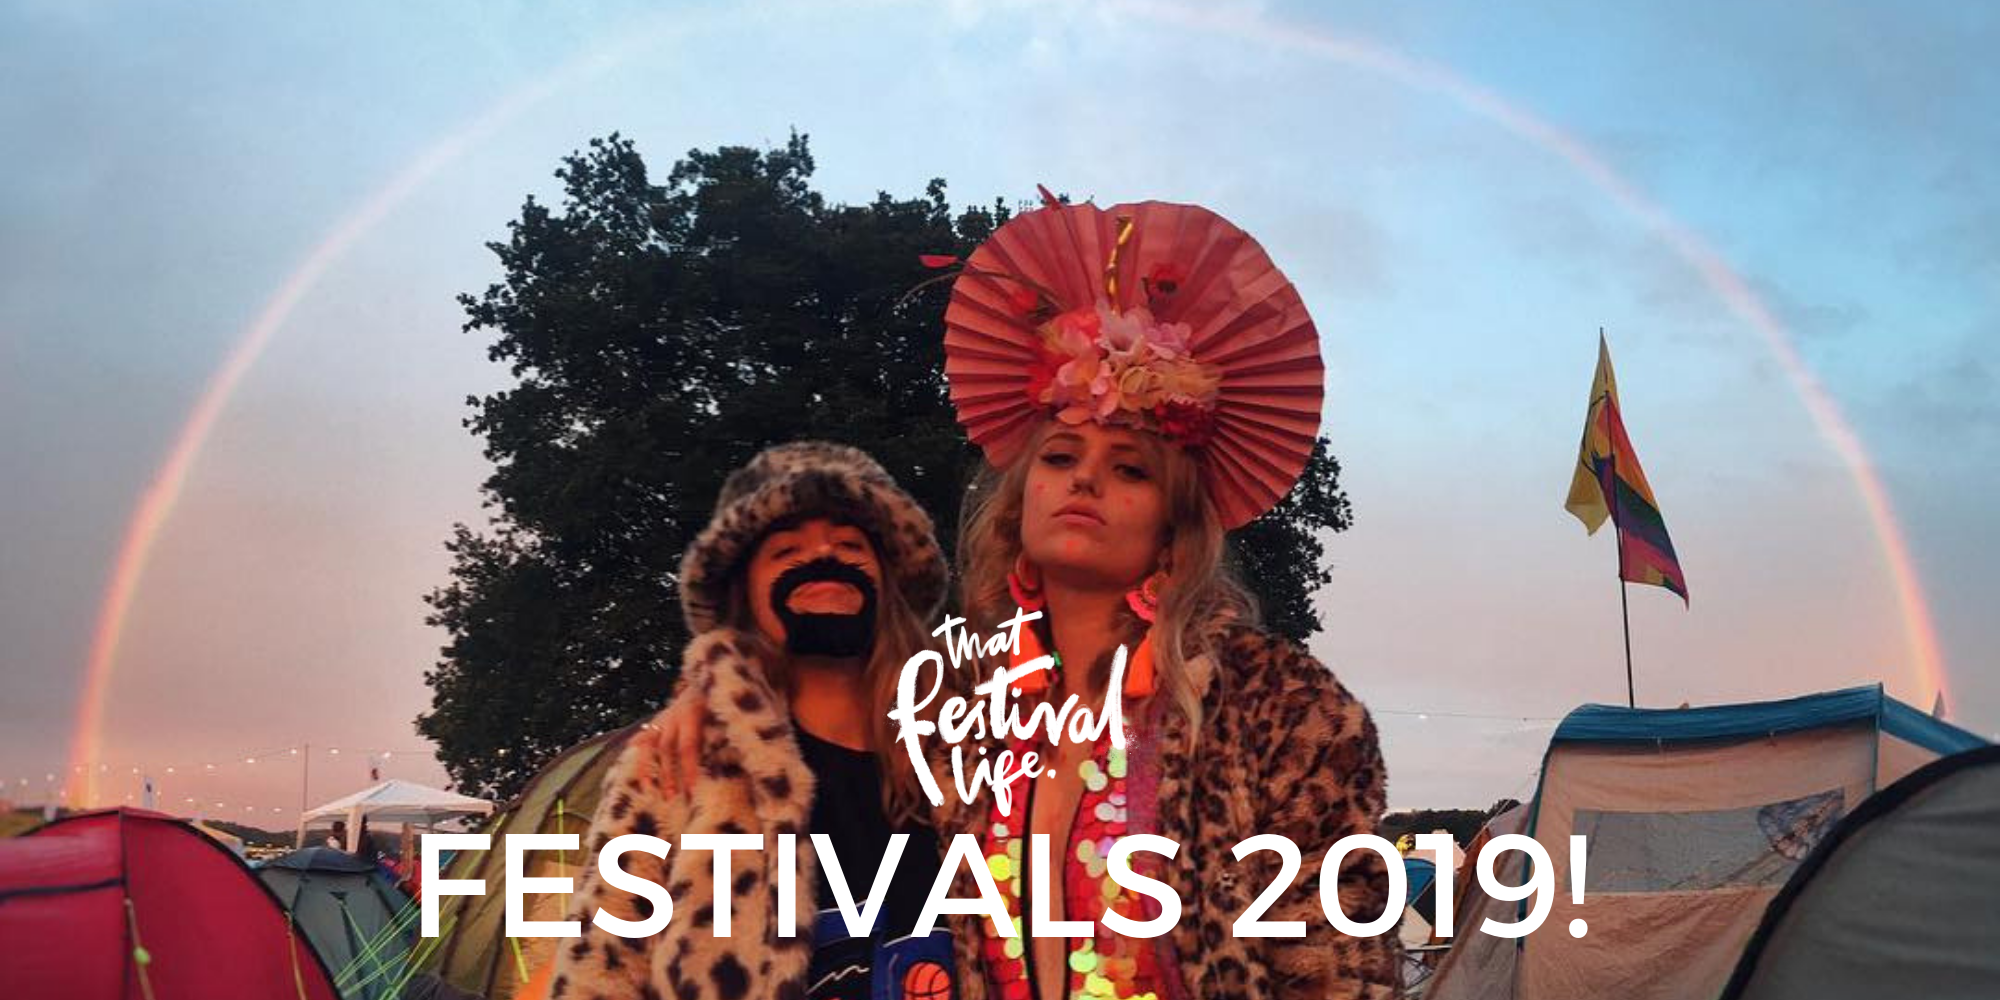 That Festival Life's Essential Festivals Summer 2019